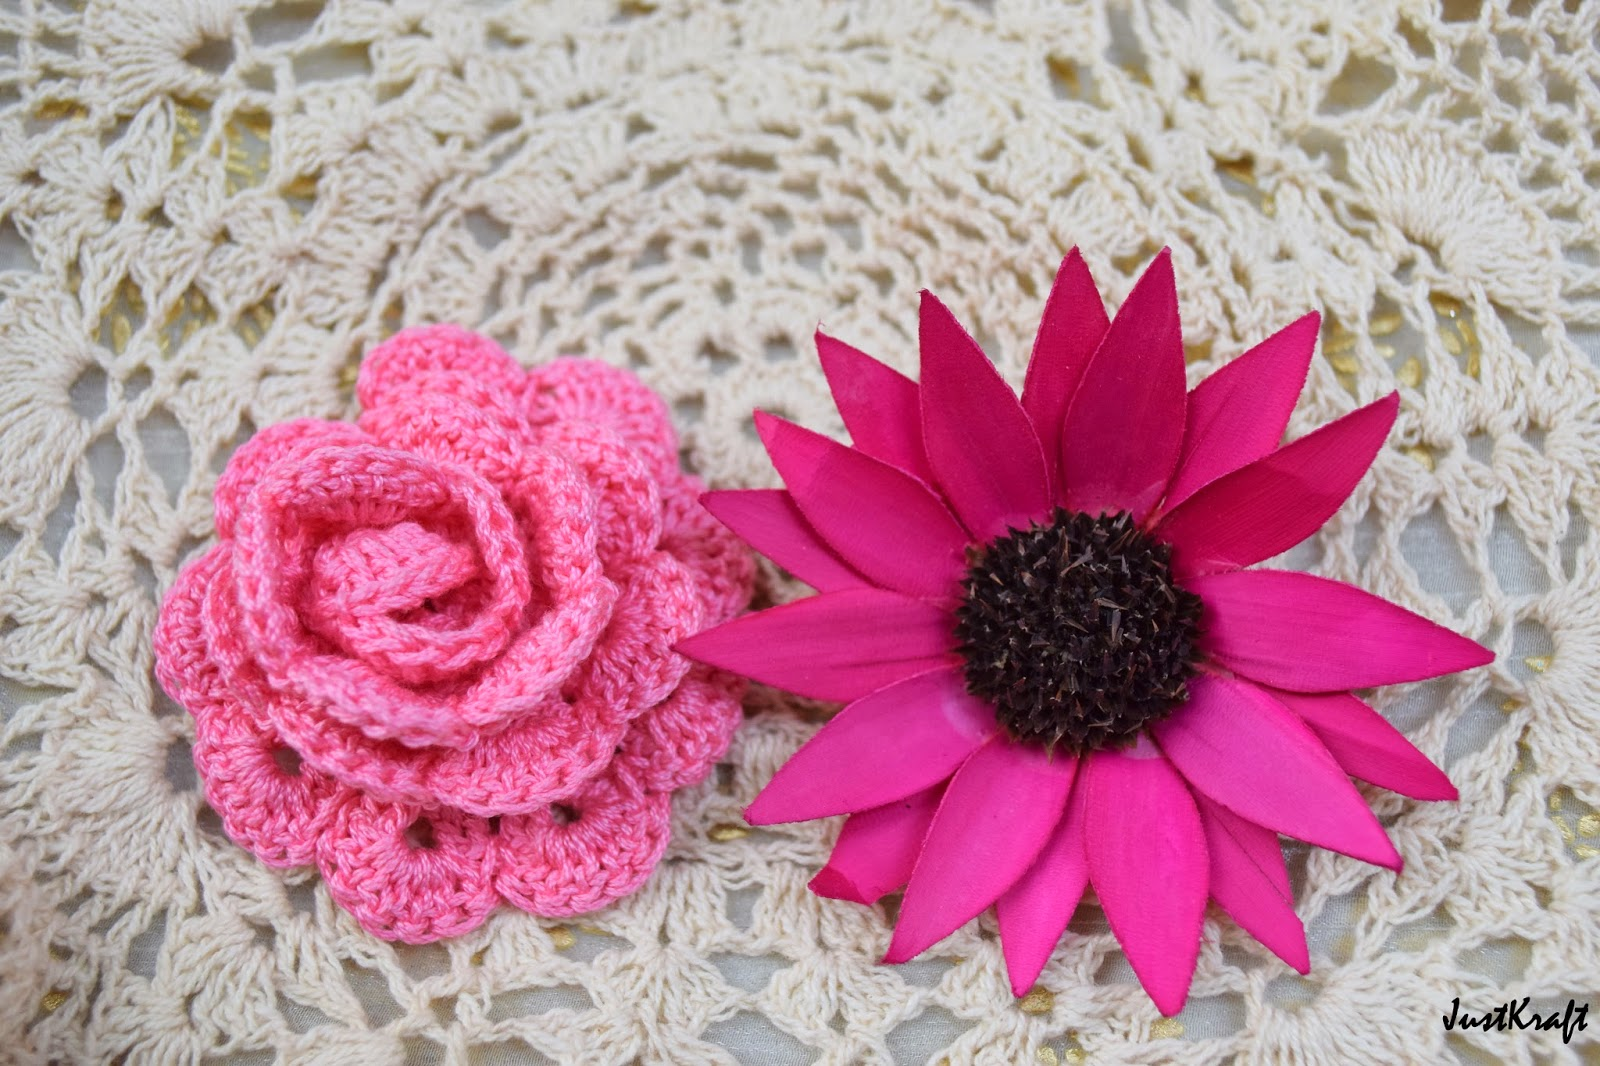 Pink crochet rose flower